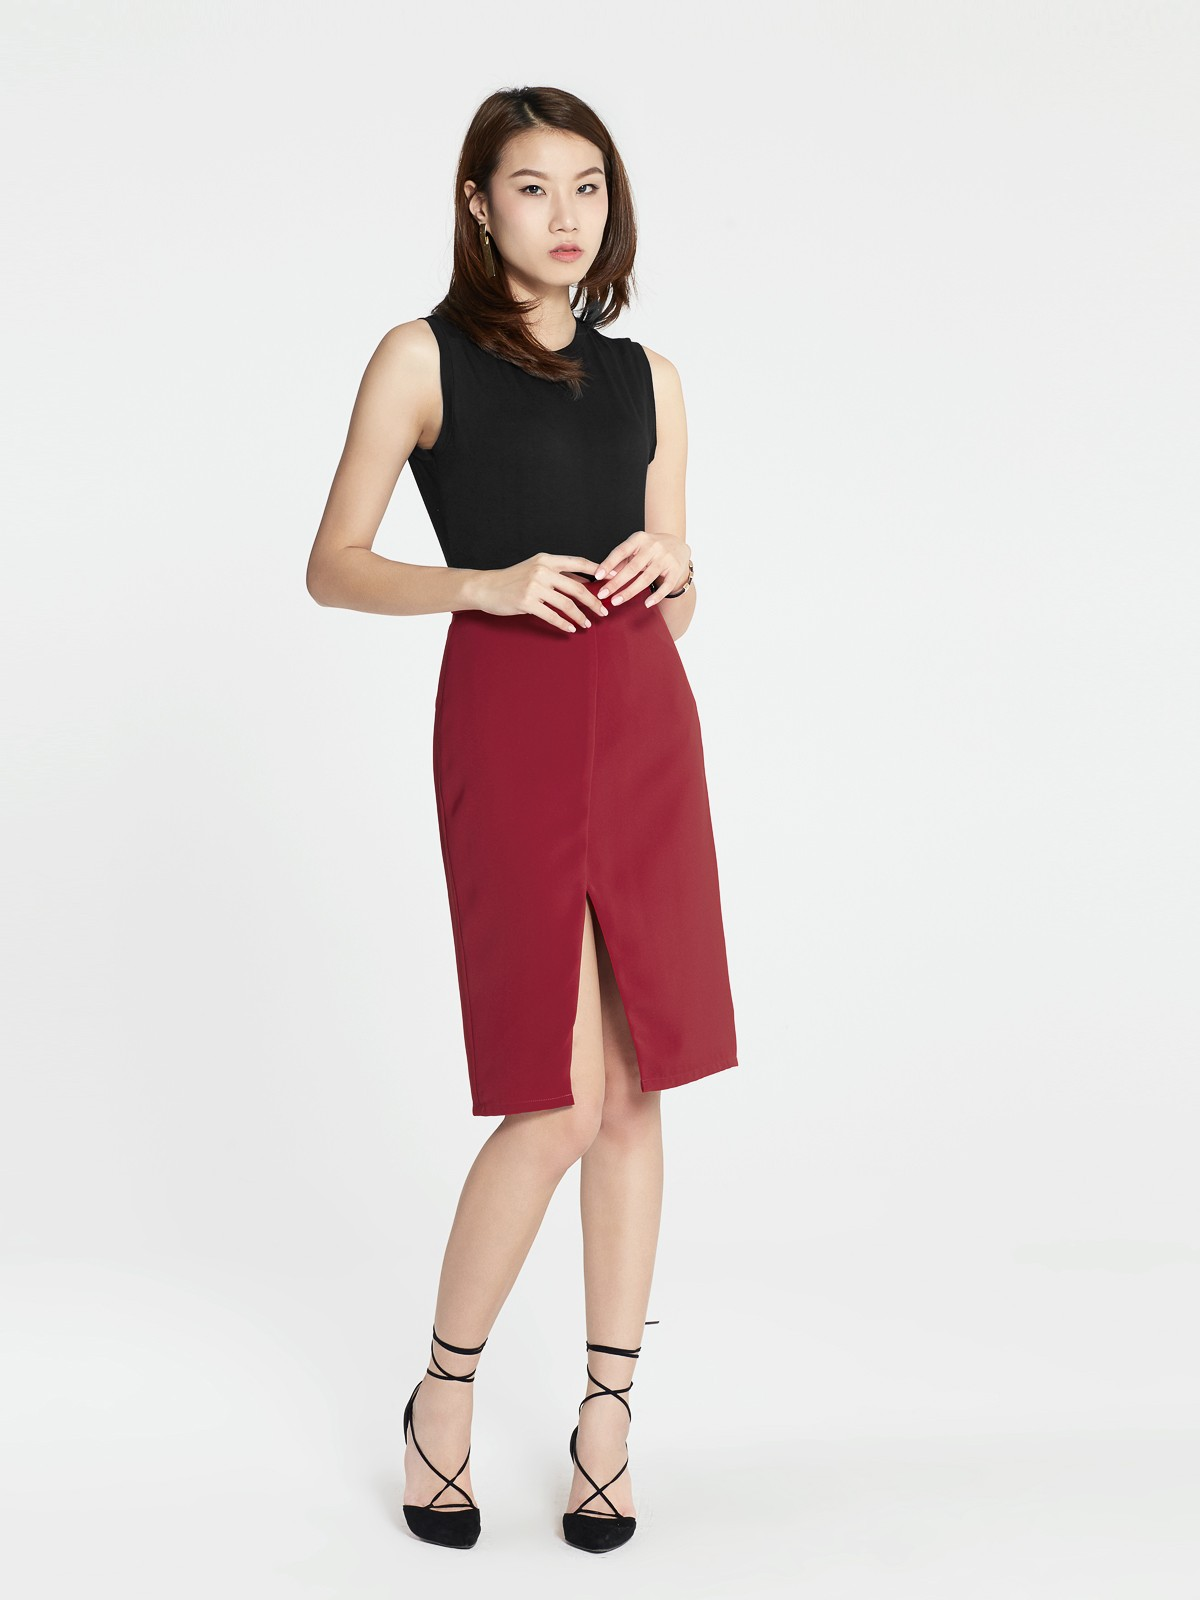 1f17d890bbd Trista Cutout Skirt - Red - Pomelo Fashion